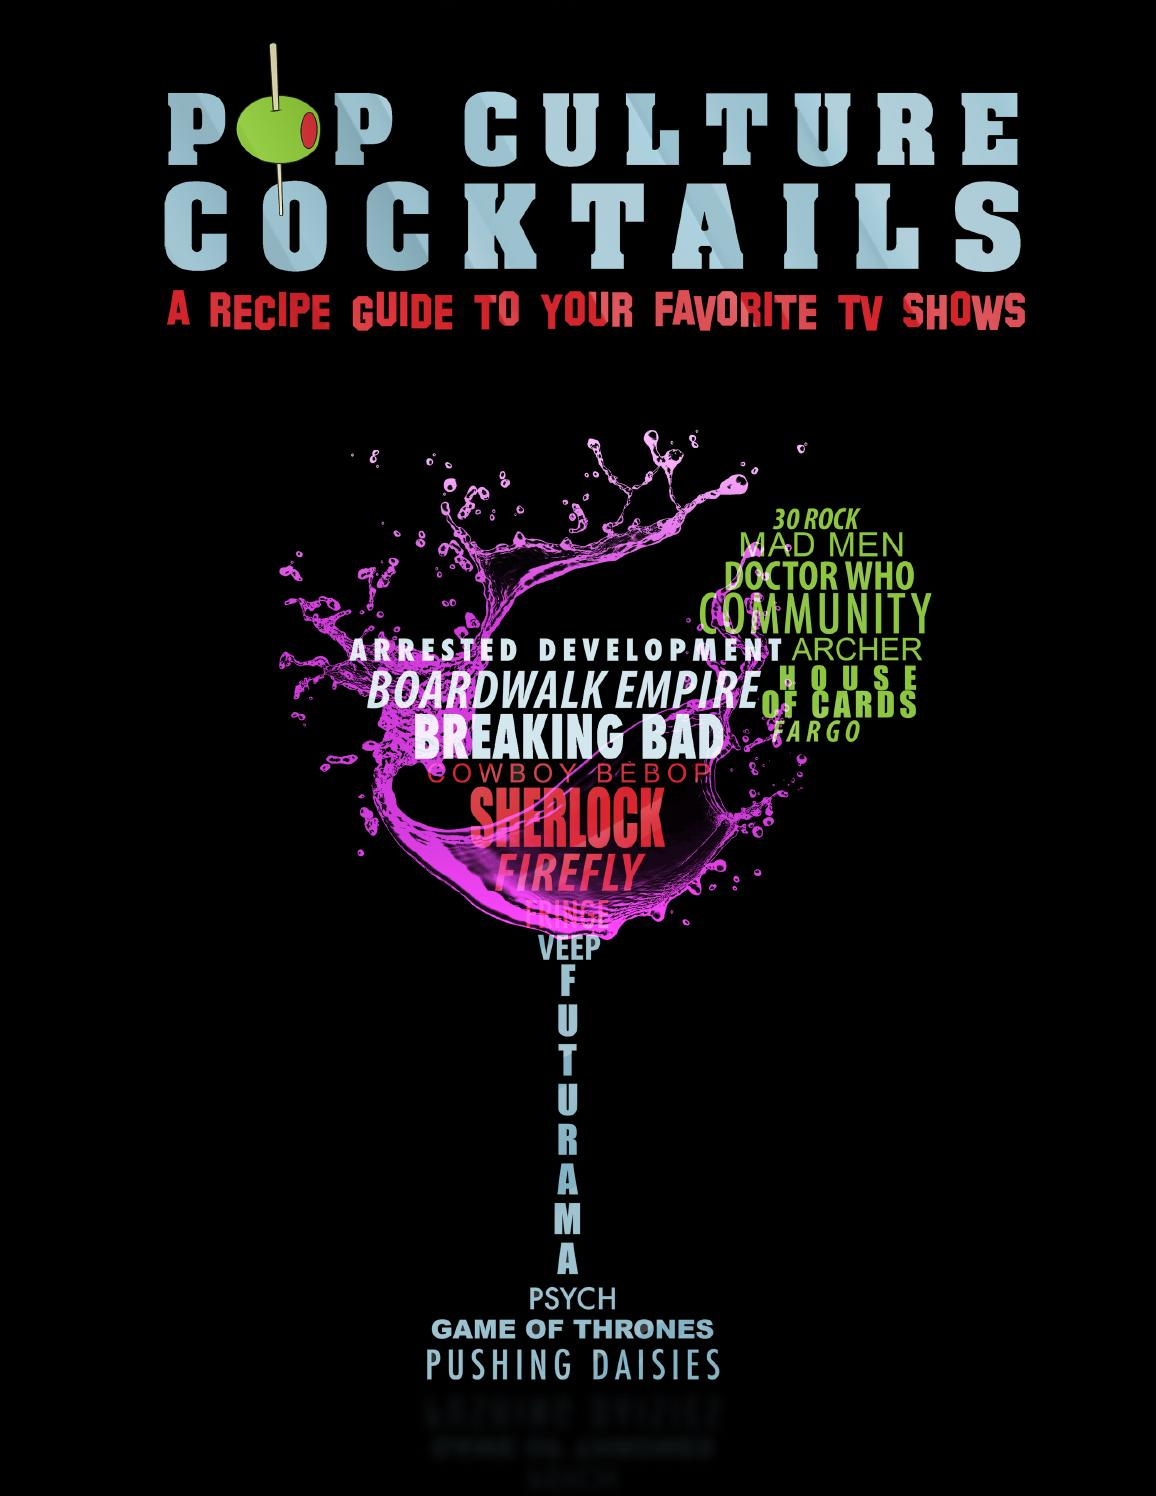 pop culture cocktails sarah sommer pdf